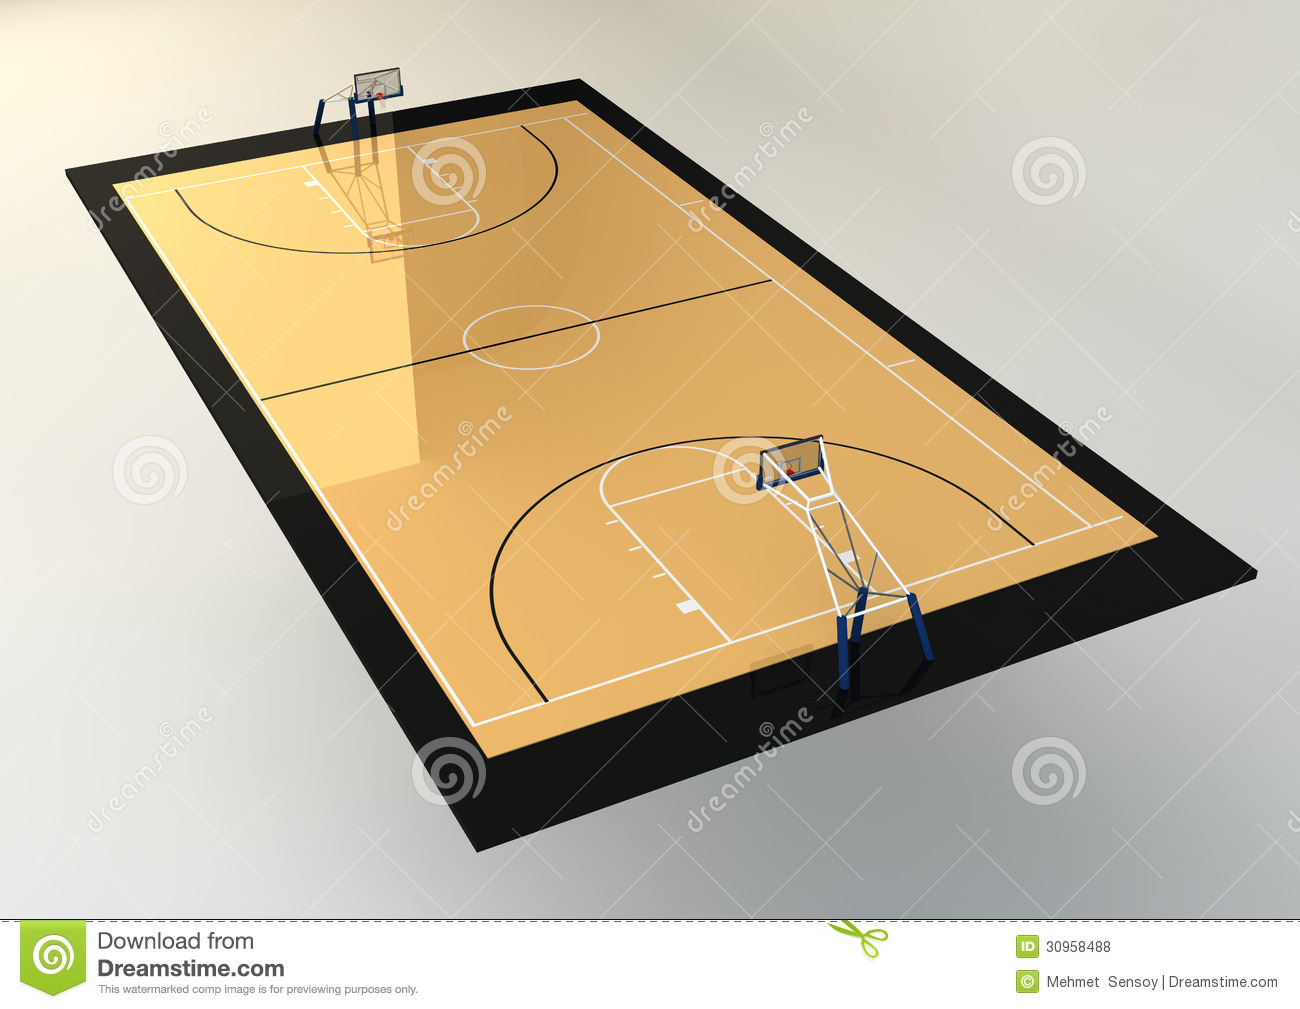 Of Basketball Court Isolated On Grey Background Mr No Pr No 0 314 0